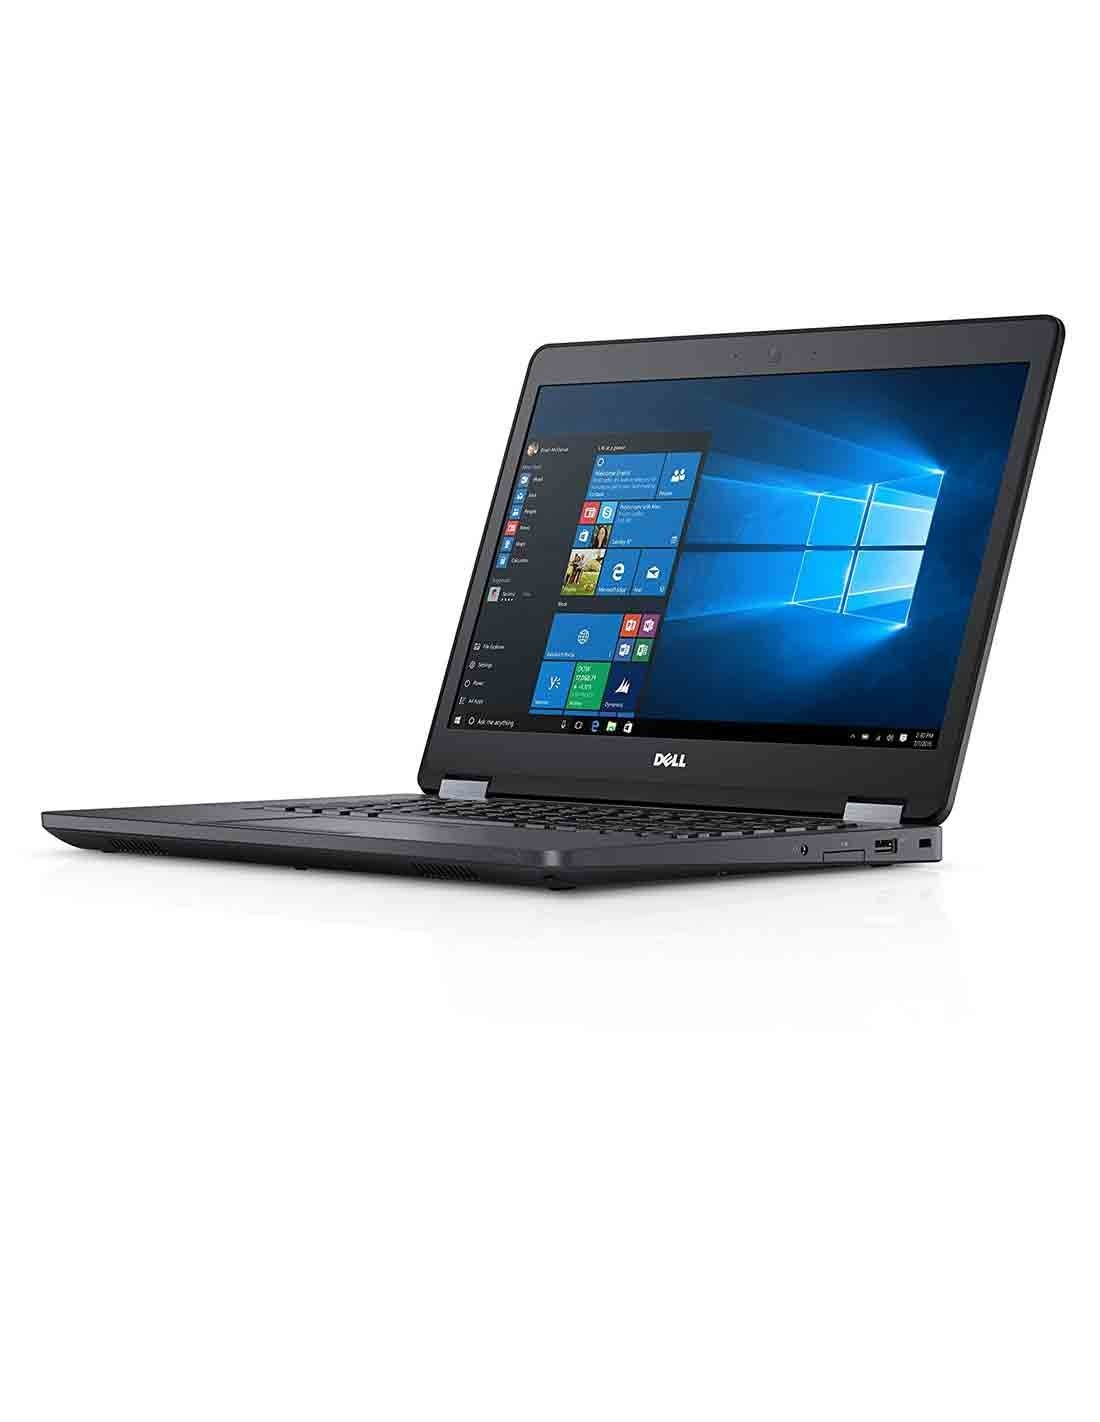 Buy Online Dell Latitude E5470 Intel Core i7 8GB Memory which is Powerful Business Laptop